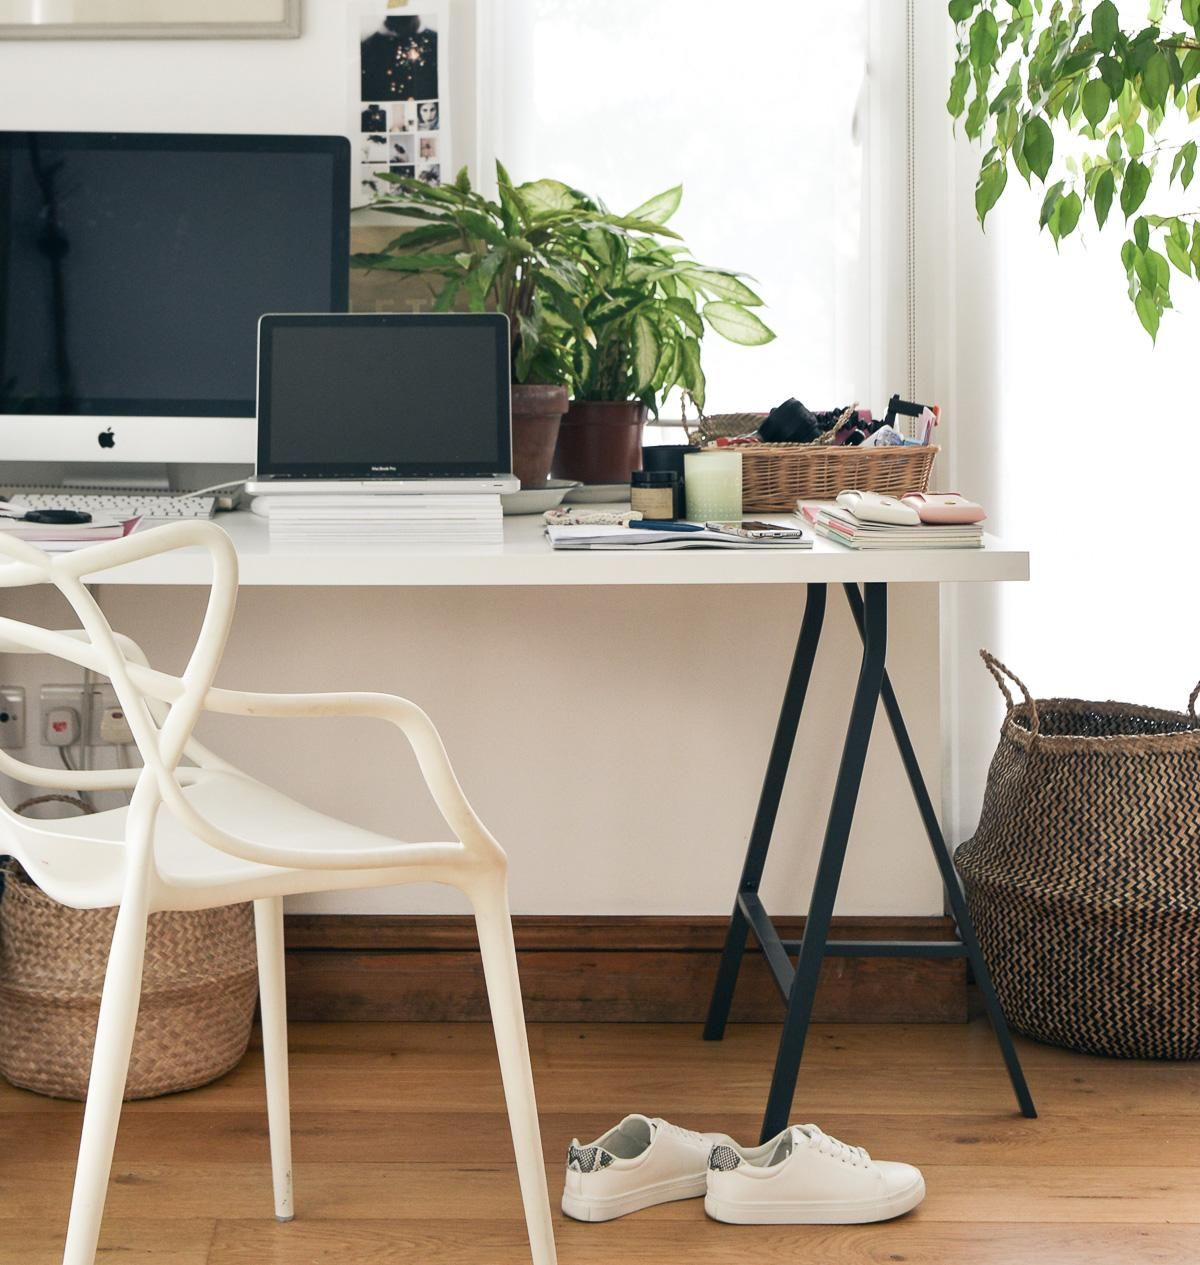 5 Feng Shui Tips For A Positive, Productive Workspace